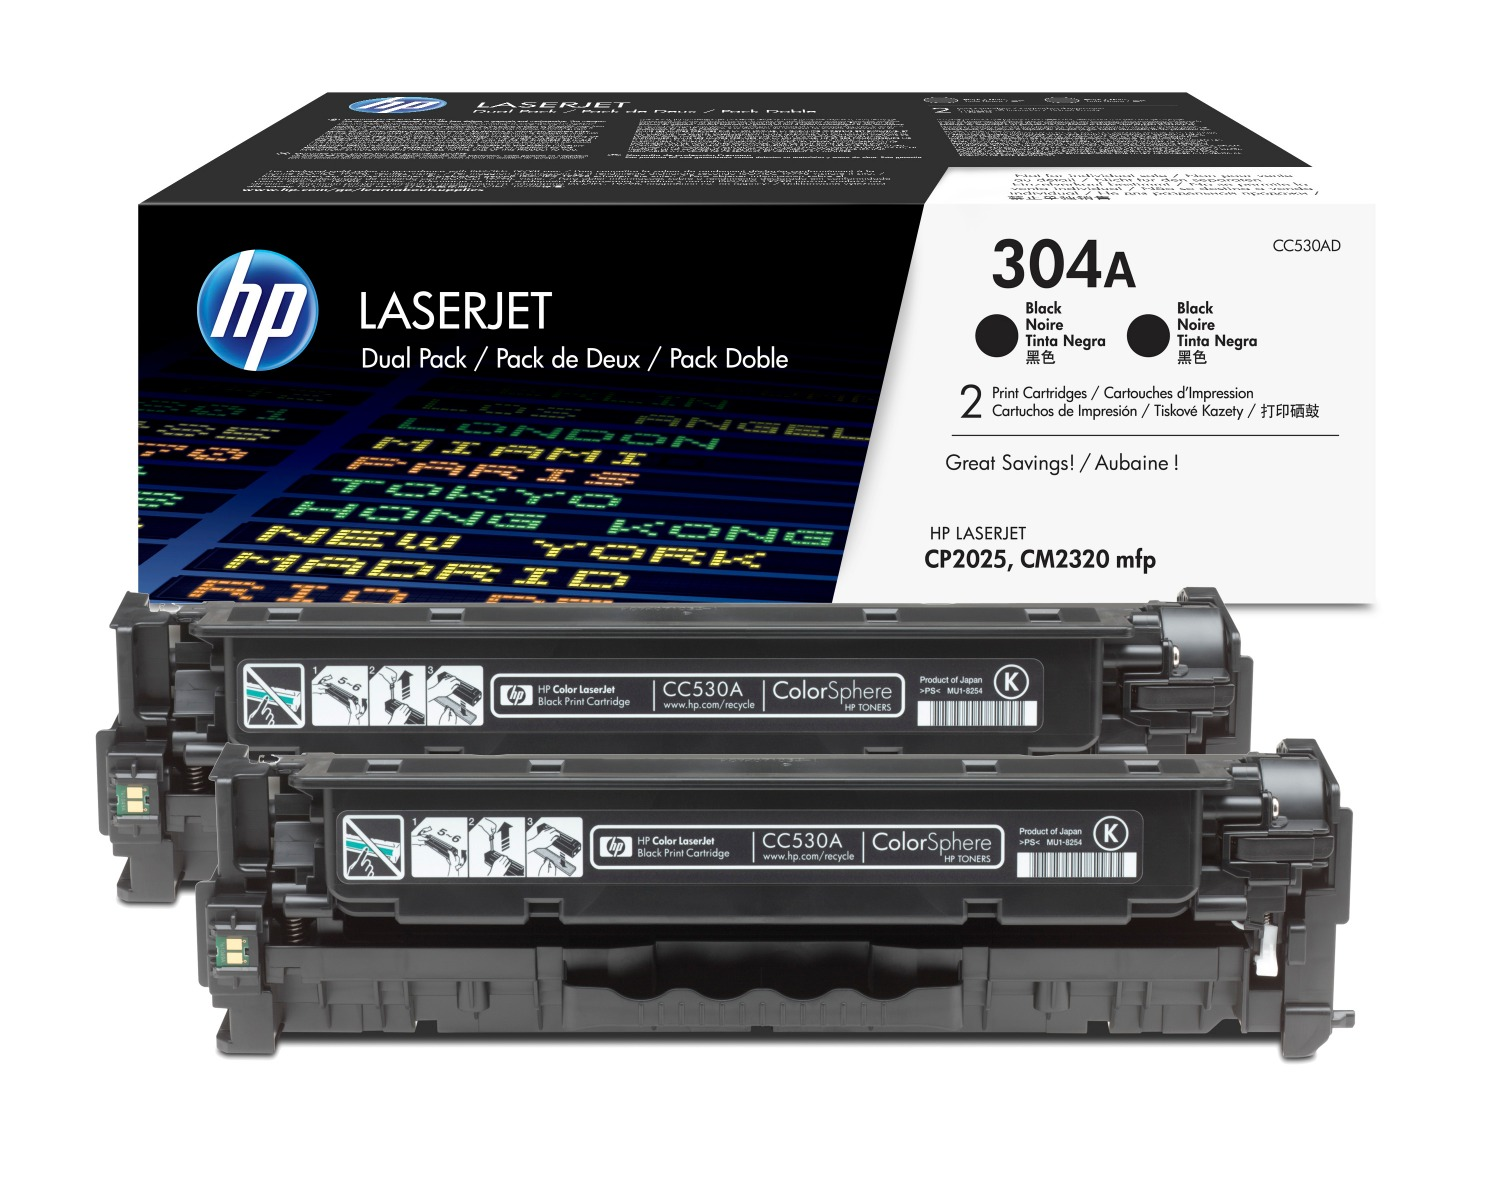 Genuine Black HP 304A Toner Cartridge Twin Pack - (CC530AD)